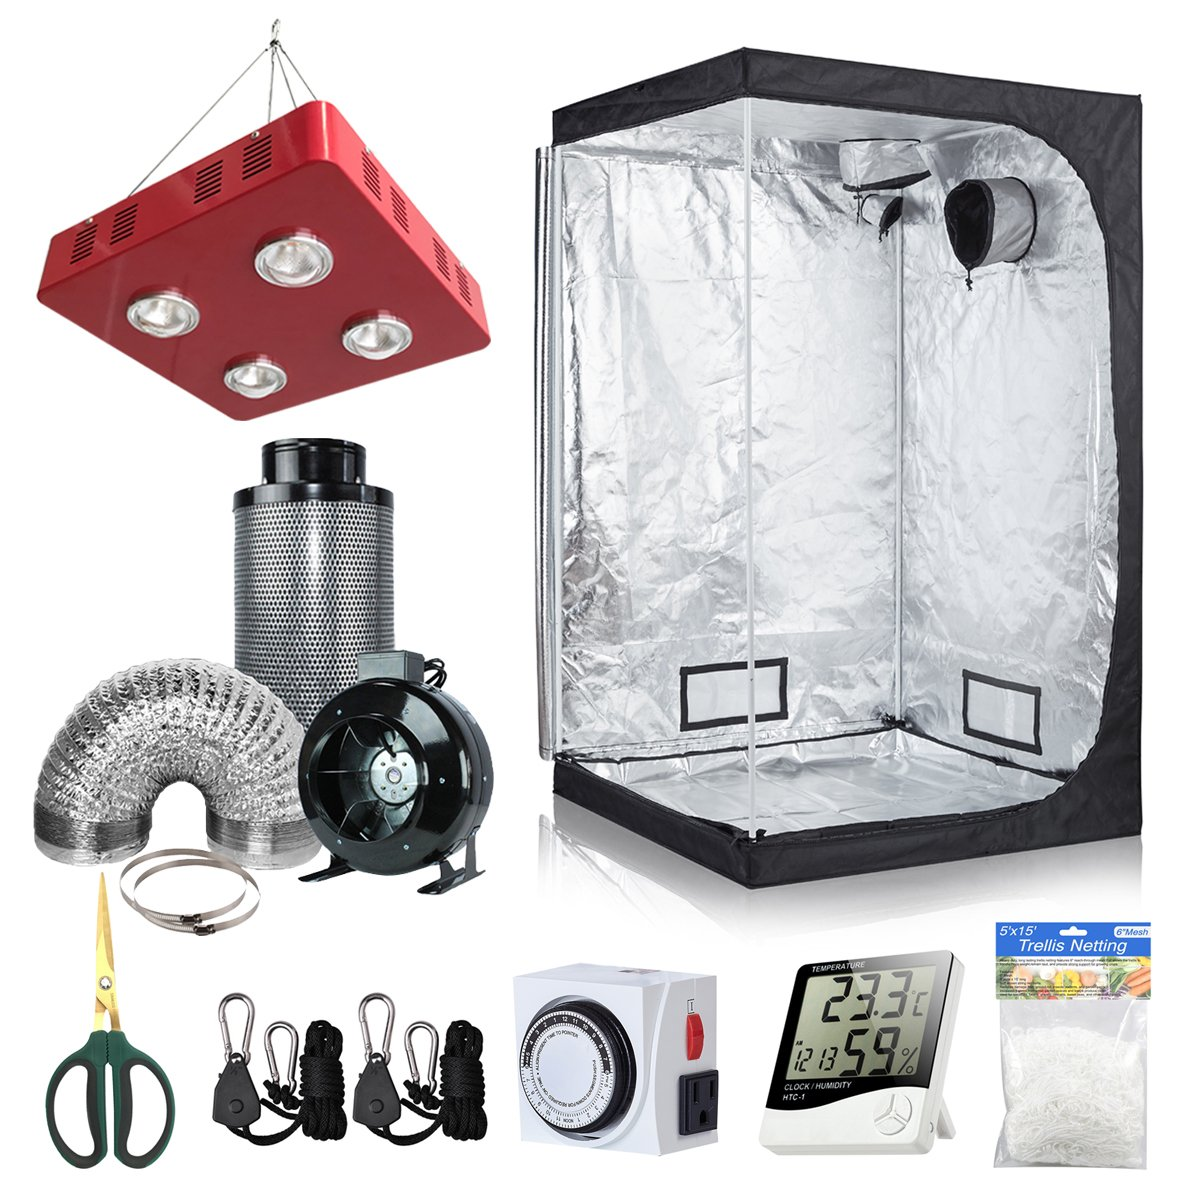 BloomGrow 48''x48''x80'' Grow Tent + 6'' Fan Filter Duct Combo + 800W LED Light + Hangers + Hygrometer + Shears + 24 Hour Timer + Trellis Netting Indoor Grow Tent Complete Kit